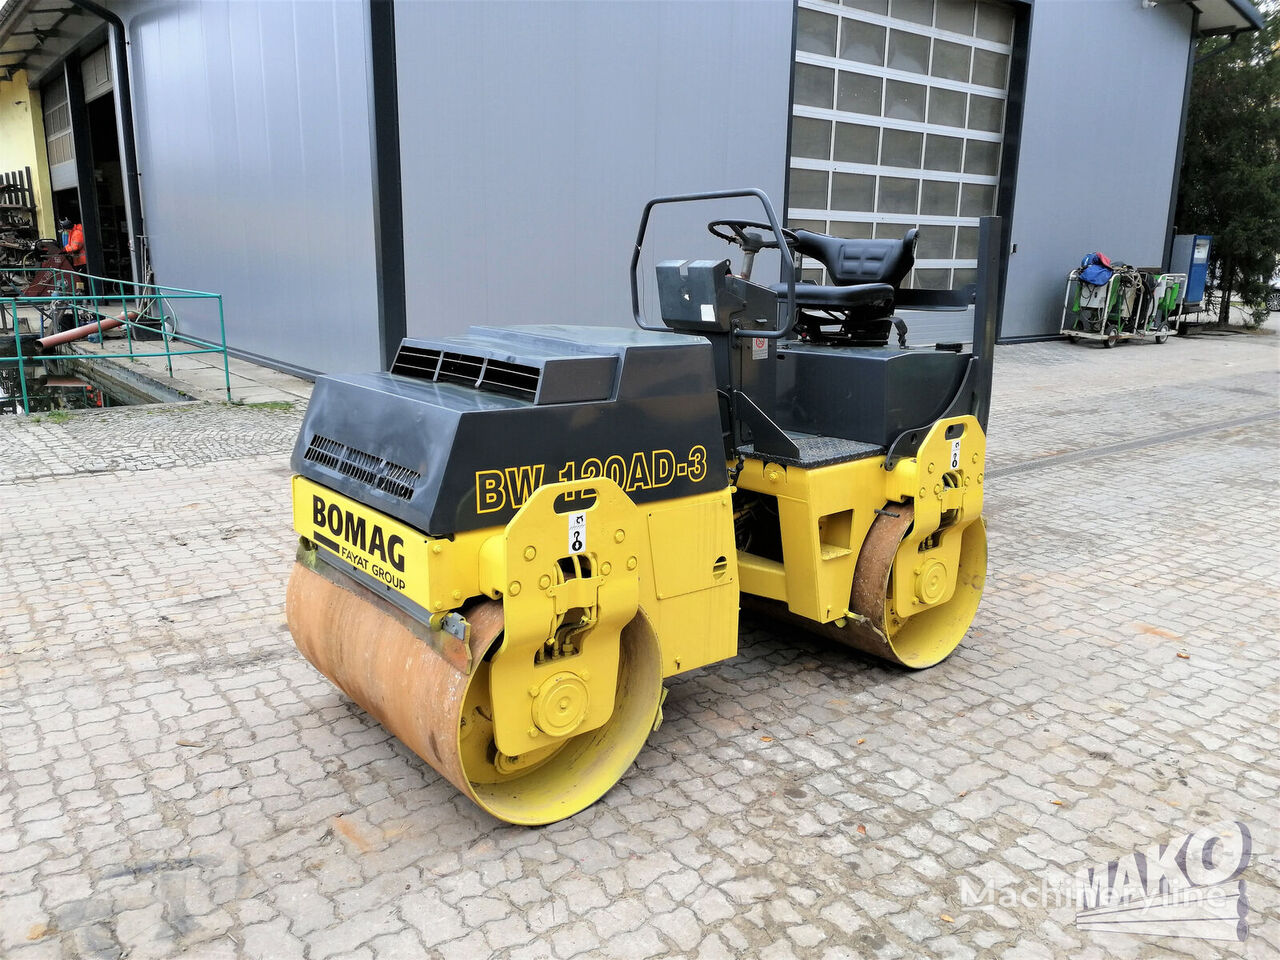 BOMAG BW 120 AD-3 road roller